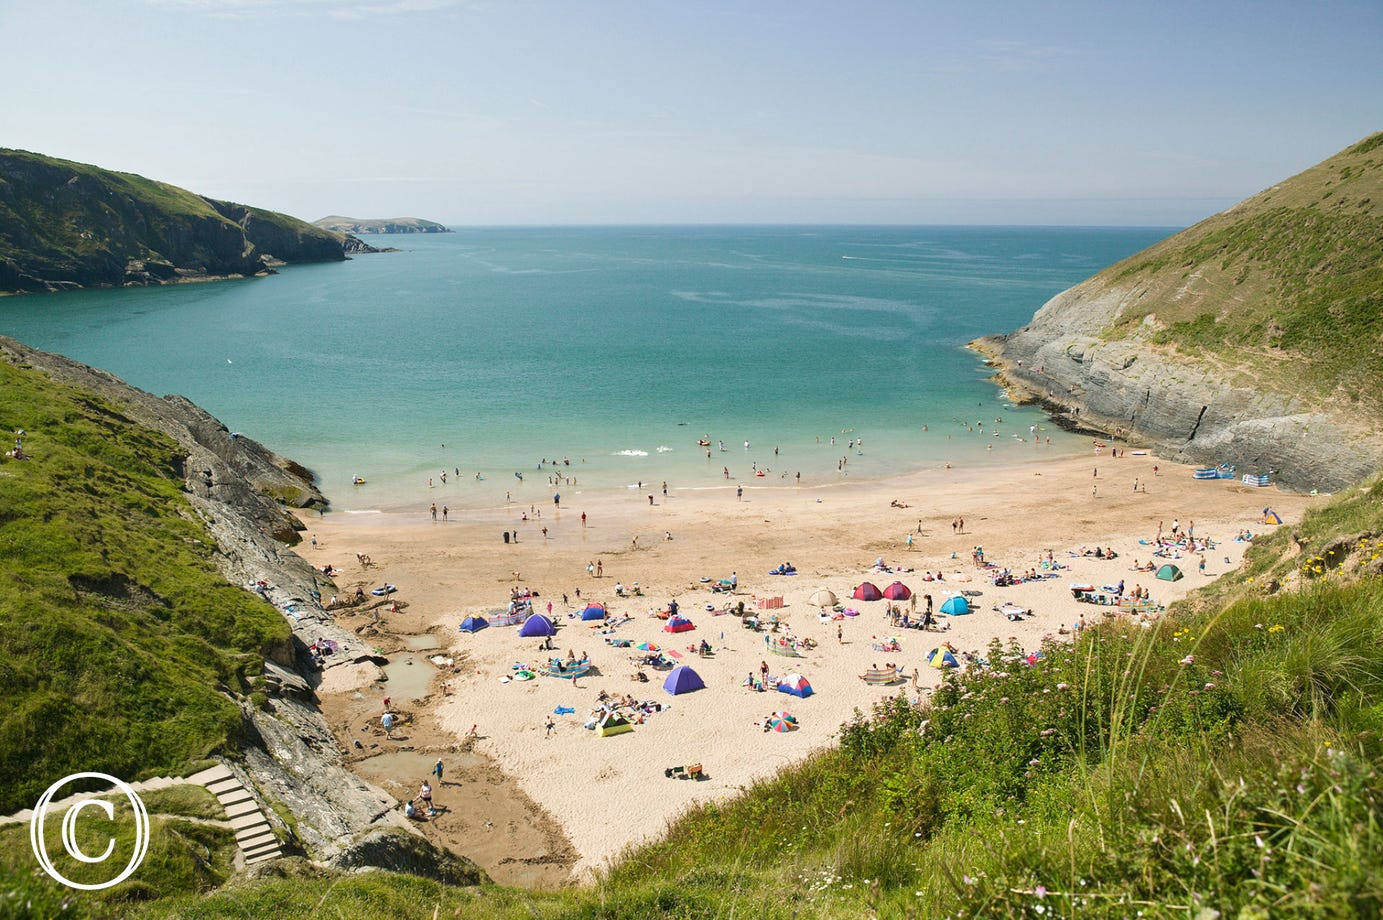 The beach at Mwnt